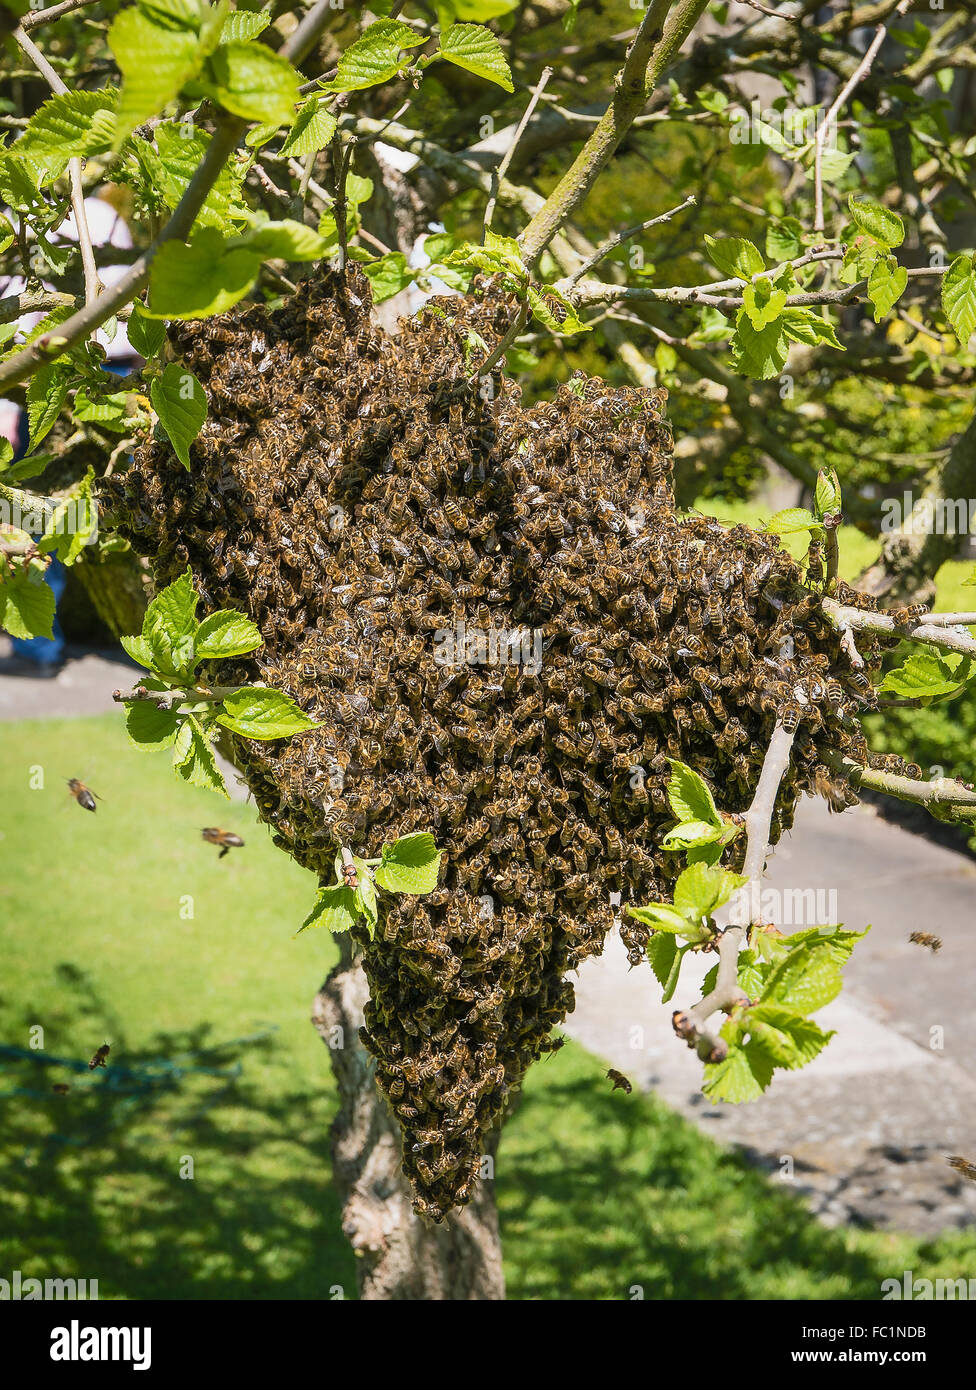 Swarm Of Bees In A Small Mulberry Tree In Spring Stock Photo